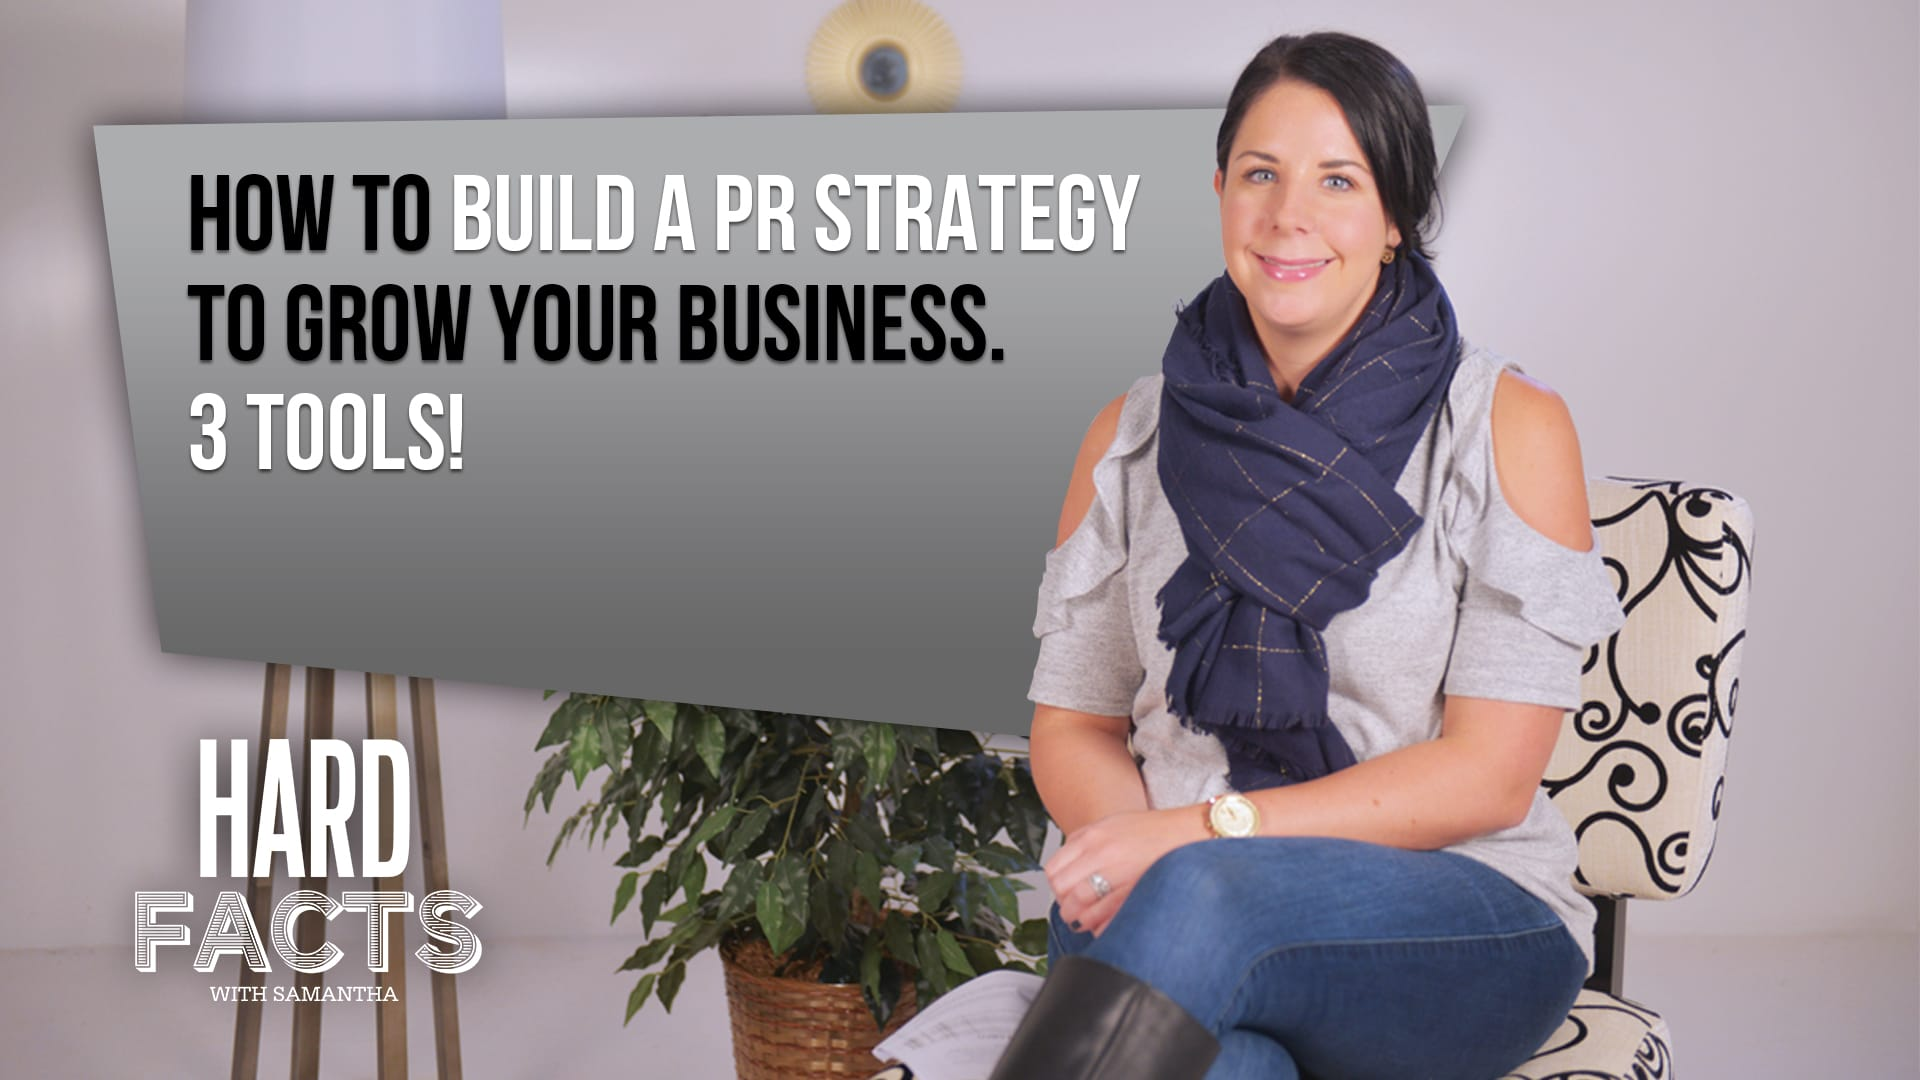 How to Build a PR Strategy to Grow Your Business – 3 TOOLS!